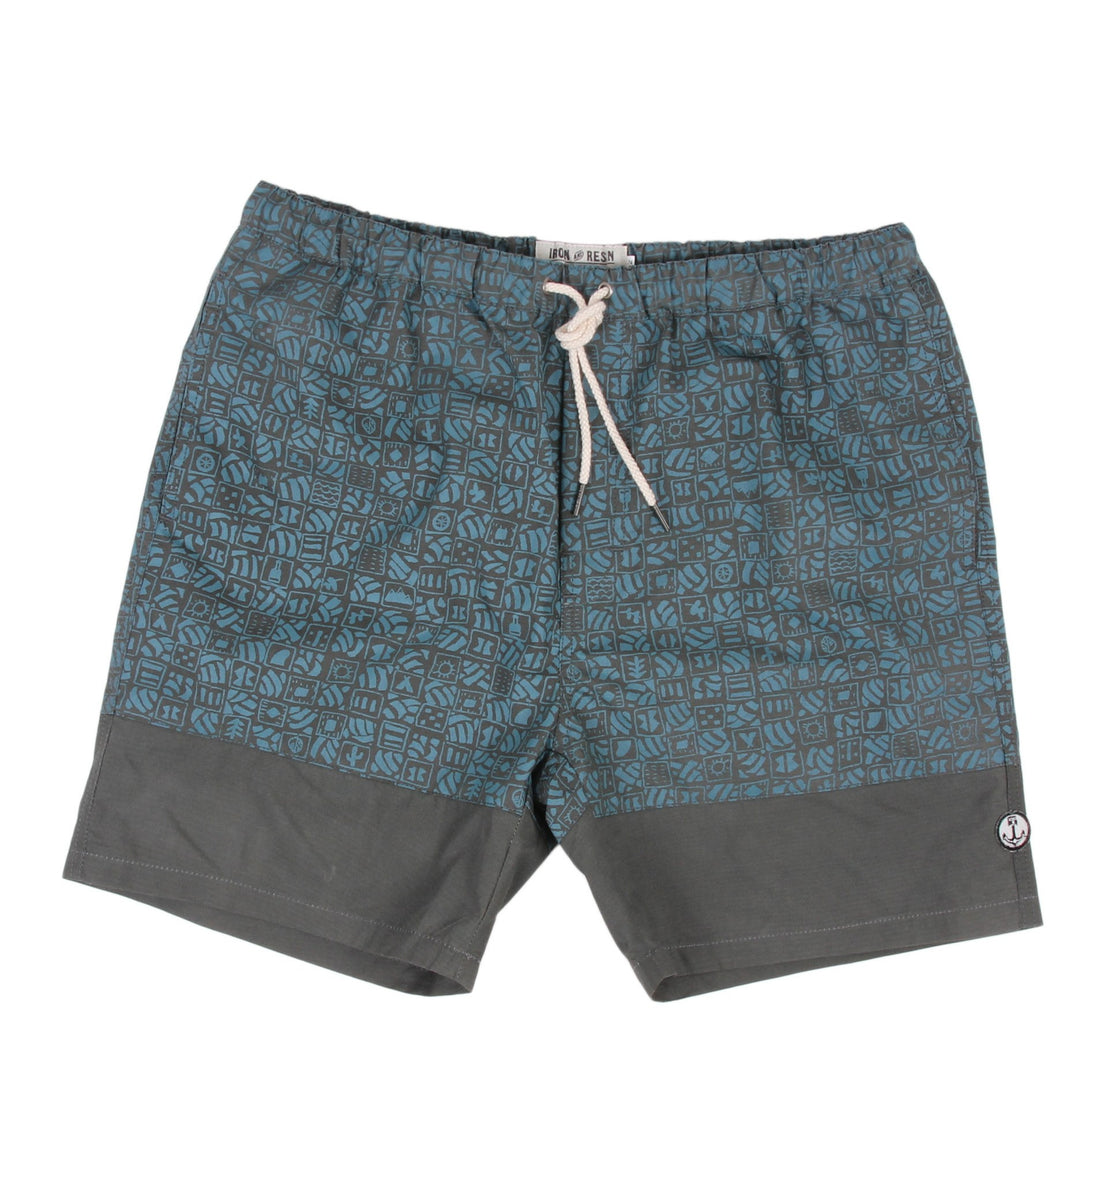 Deck Trunk - Apparel: Men's: Swimwear - Iron and Resin